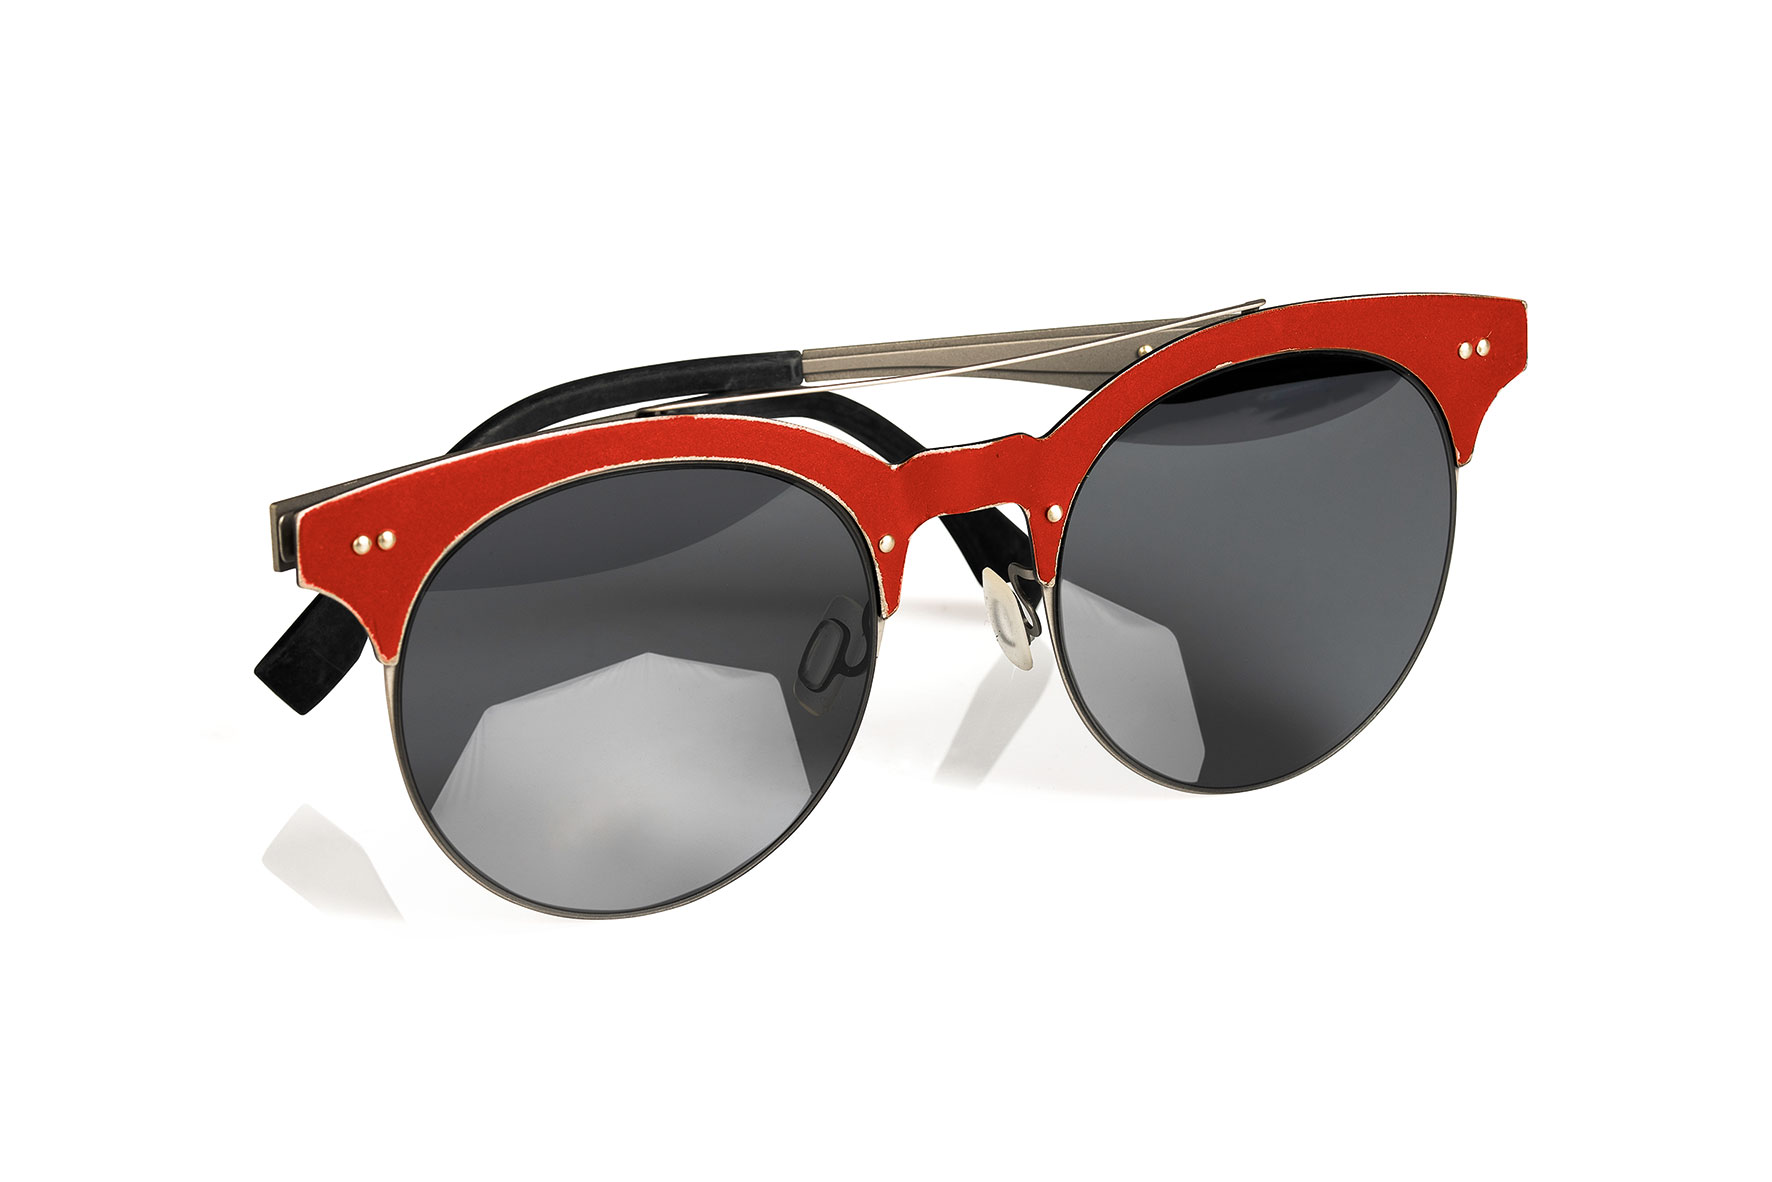 RED GRINDER SUNGLASSES with RED TEMPLES